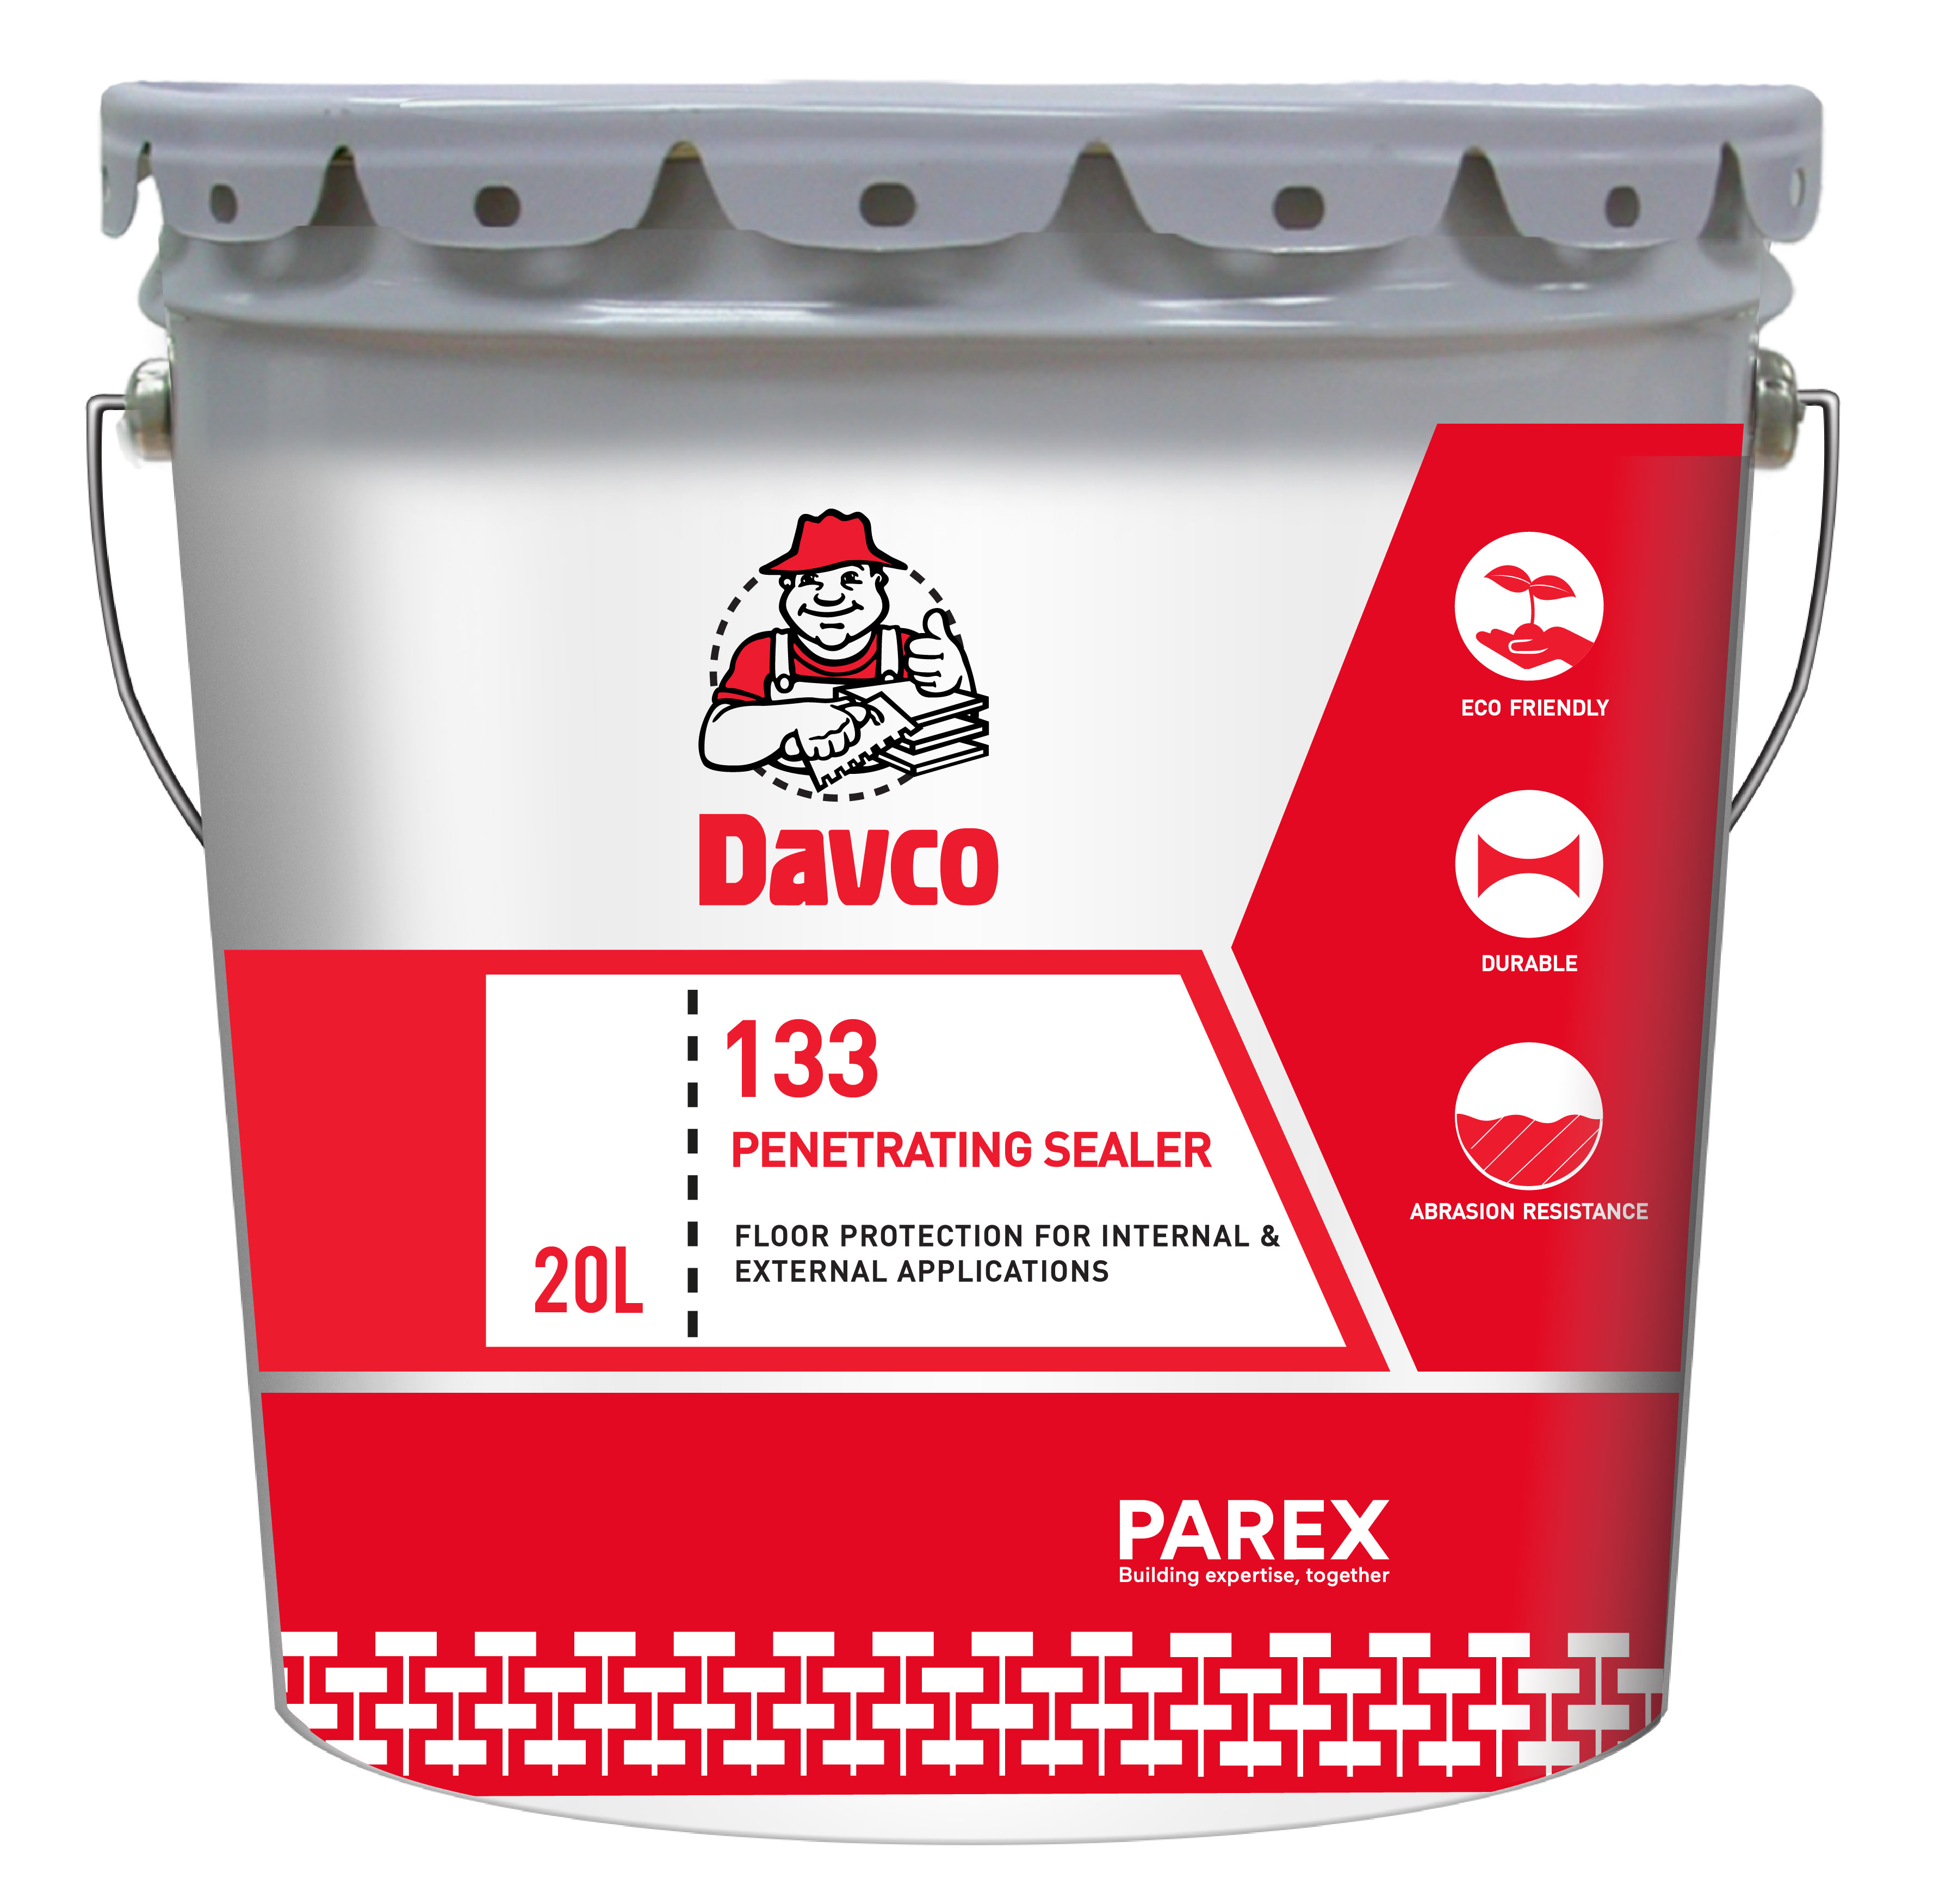 Davco 133 Penetration Sealer